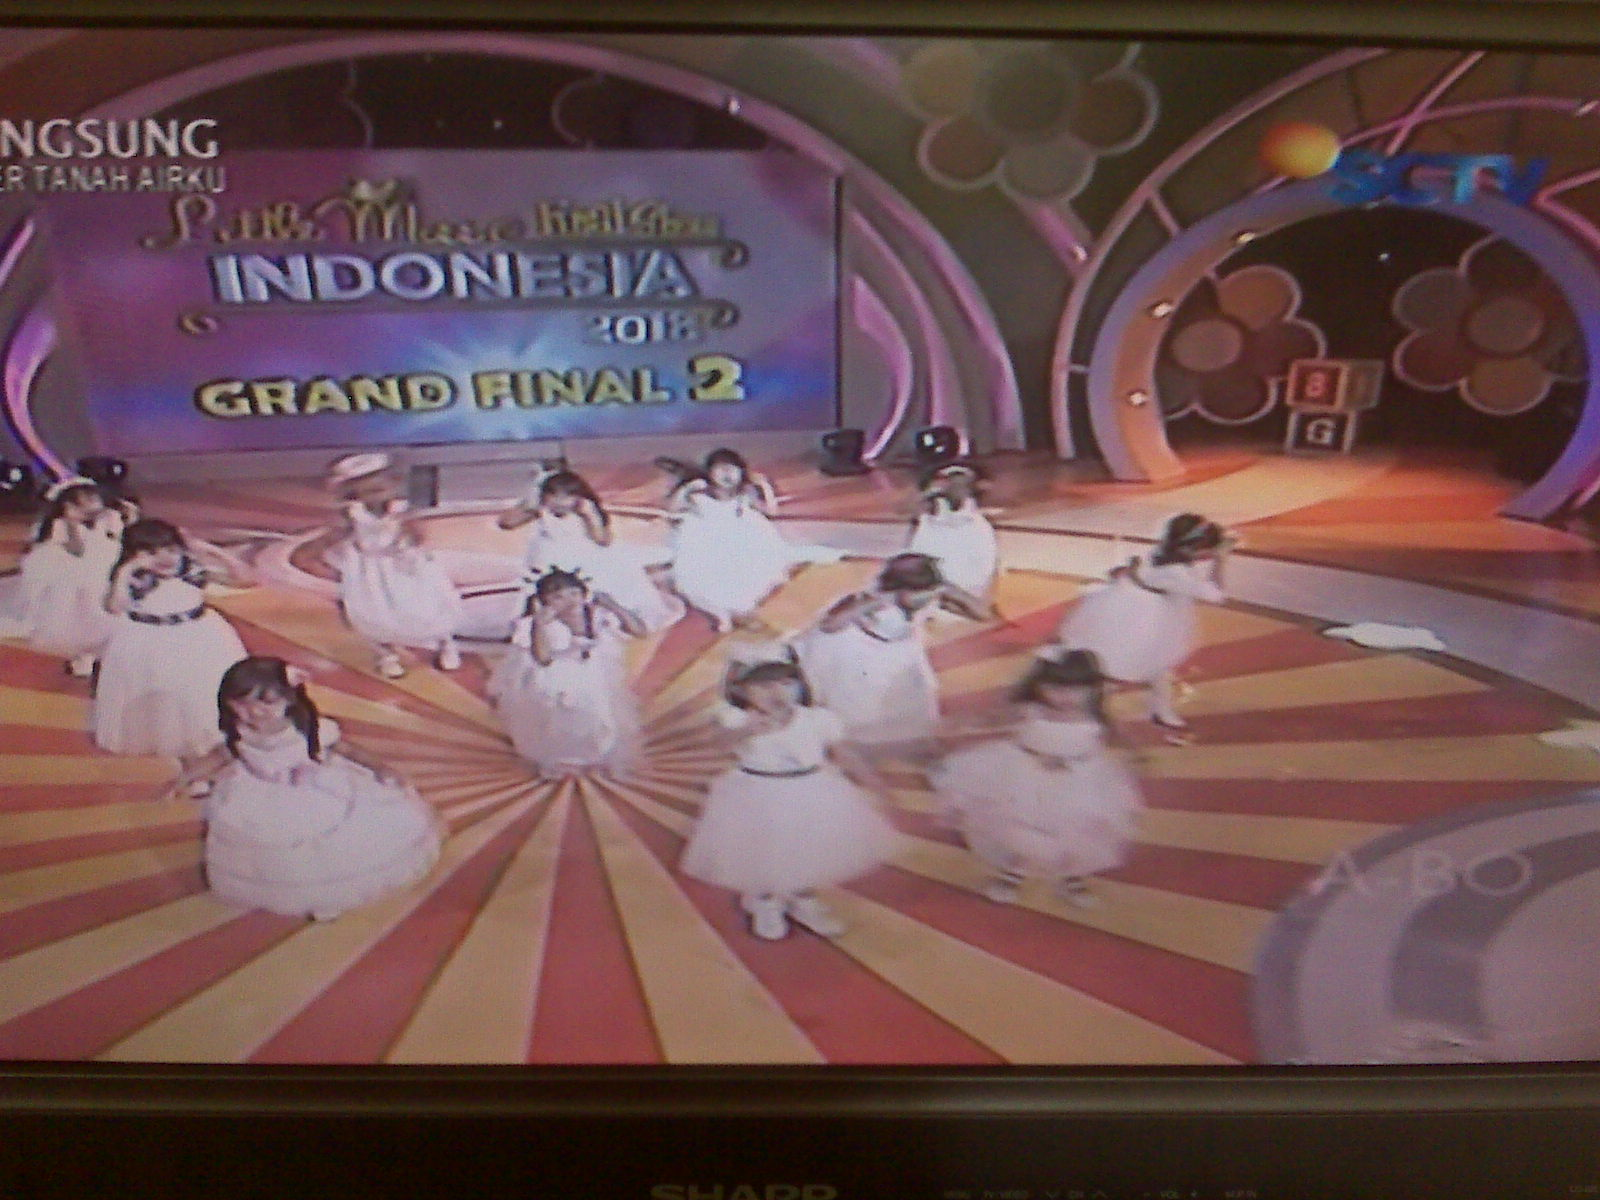 Tampilan Red Carpet grand final 2 little miss indonesia 2013